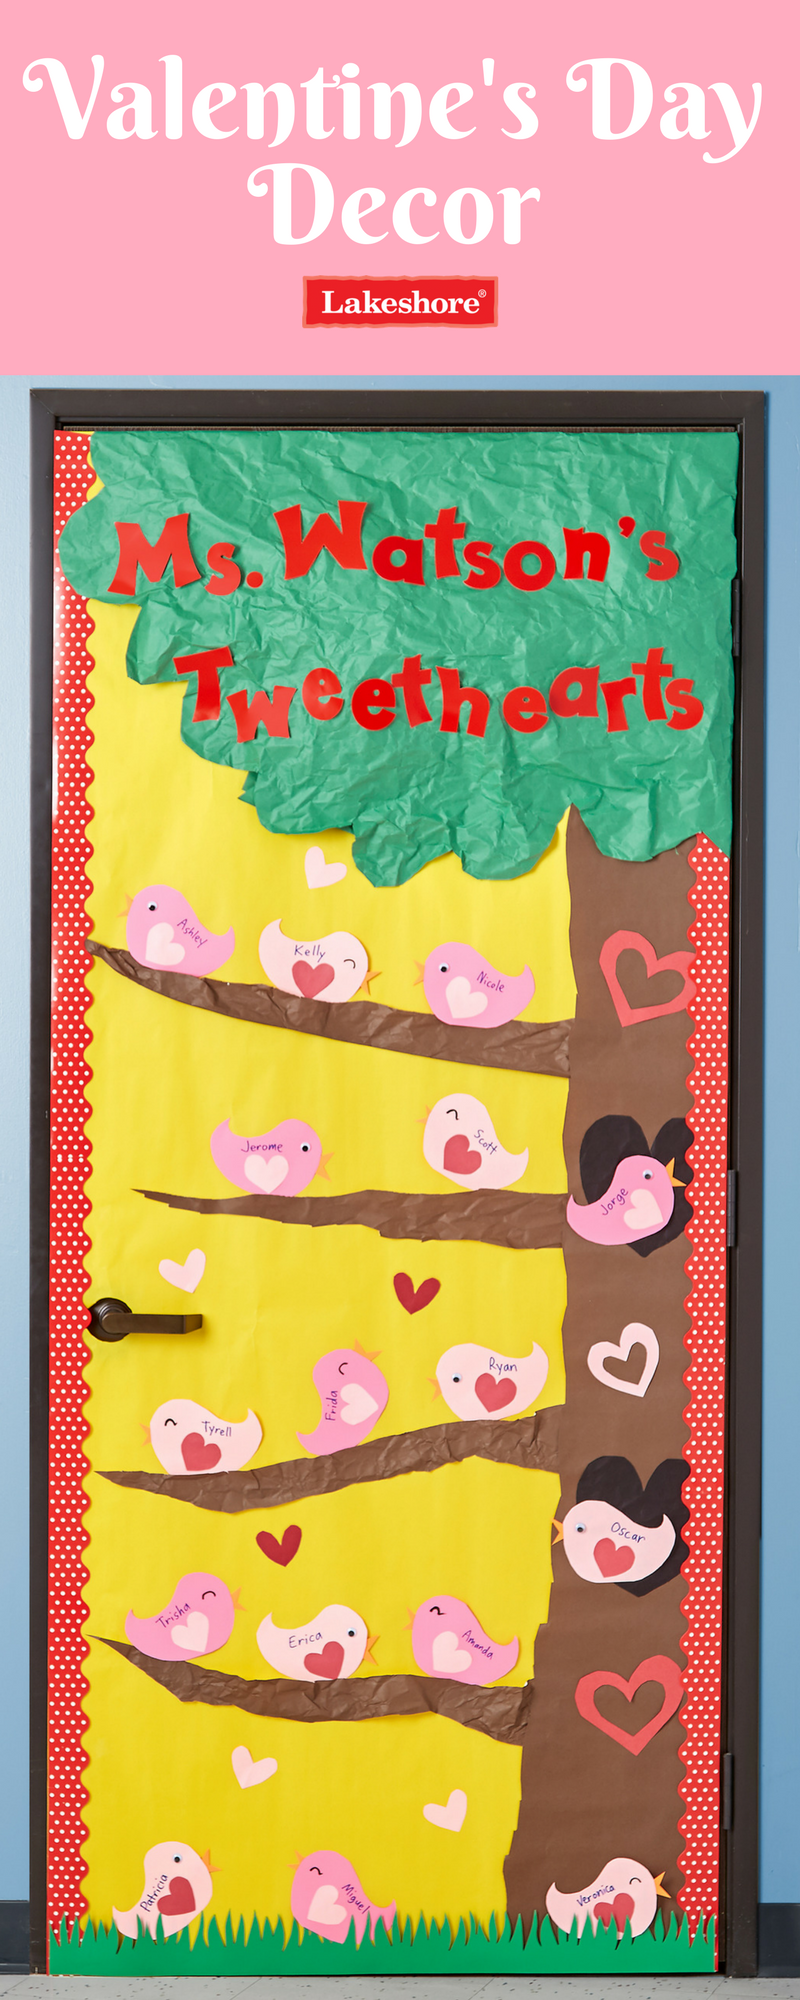 Classroom window decoration  Show your uctweetheartsud a little love this Valentineus Day with an